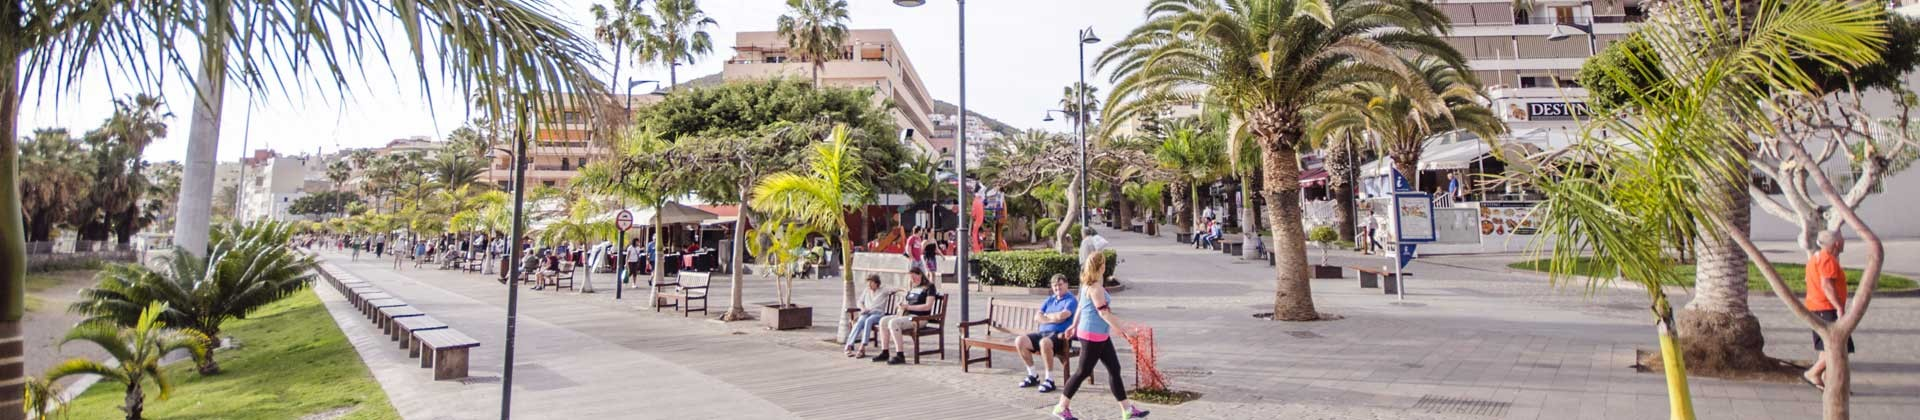 https://www.goodmorningtenerife.com/wp-content/uploads/2014/08/05_slide_landscape_GM_Tenerife-1920x420.jpg